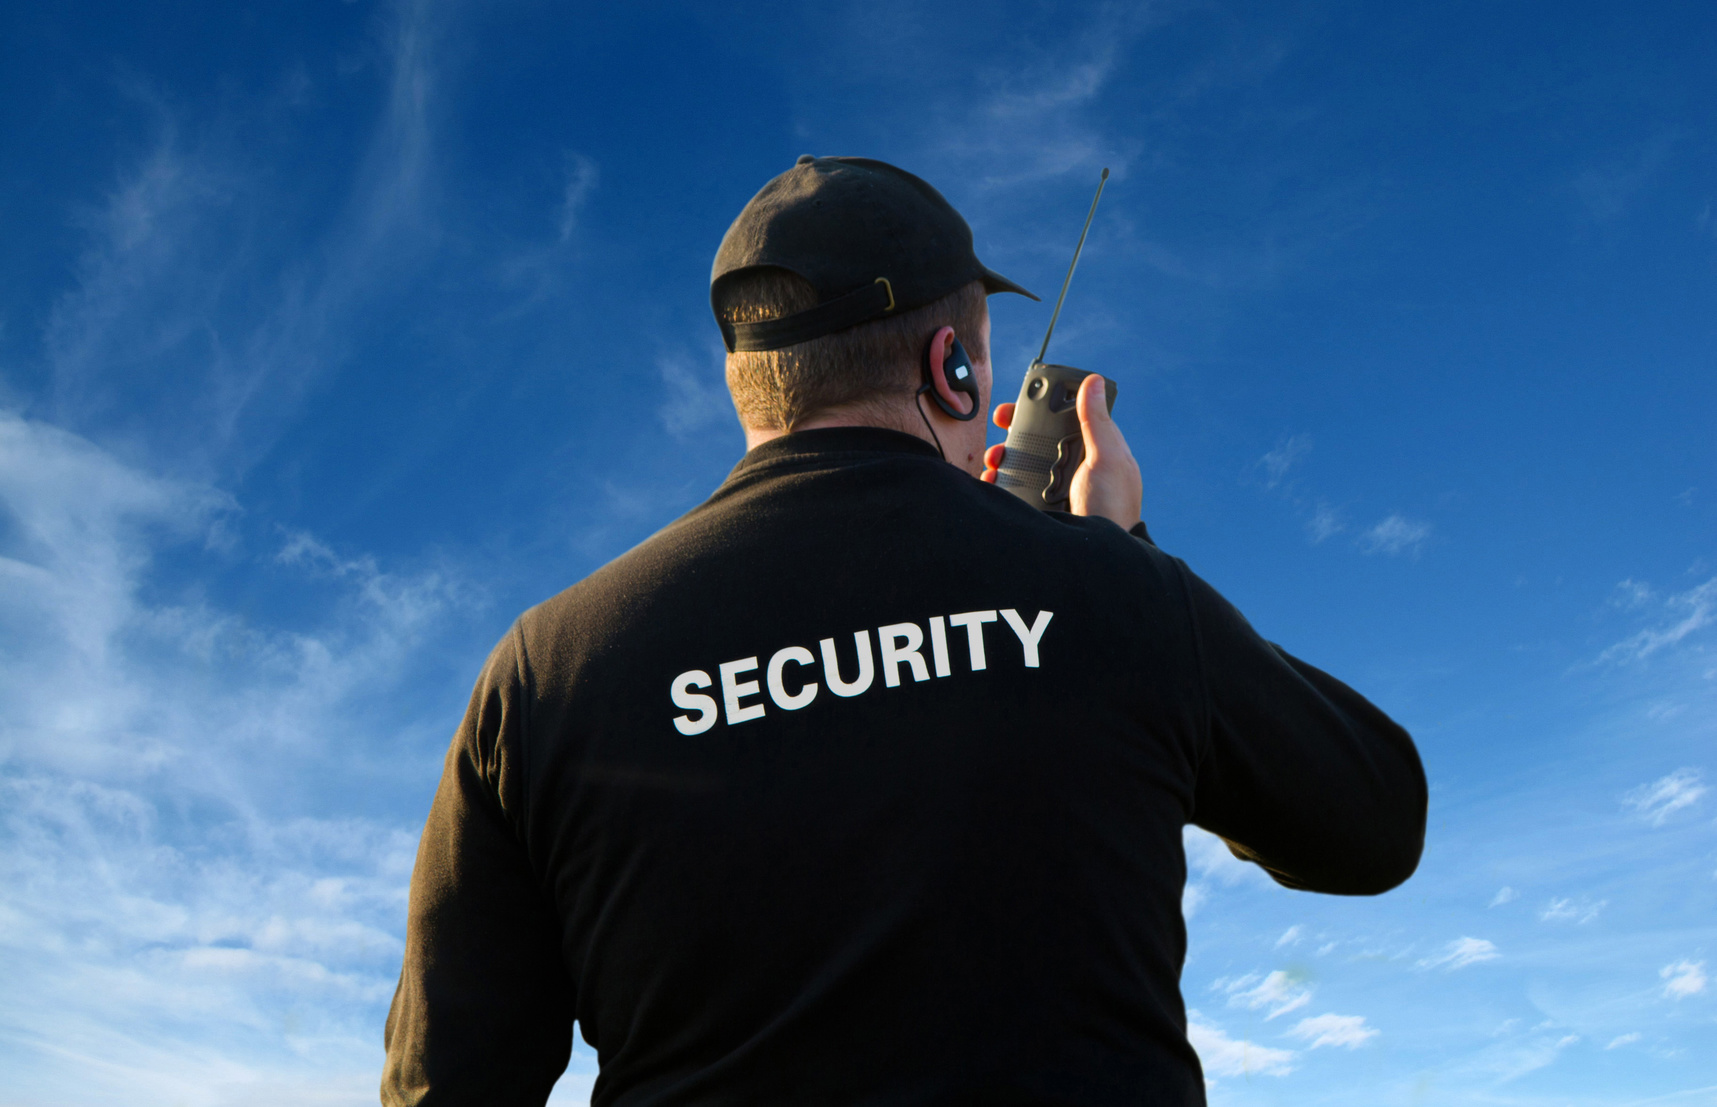 Device Management and protecting your security